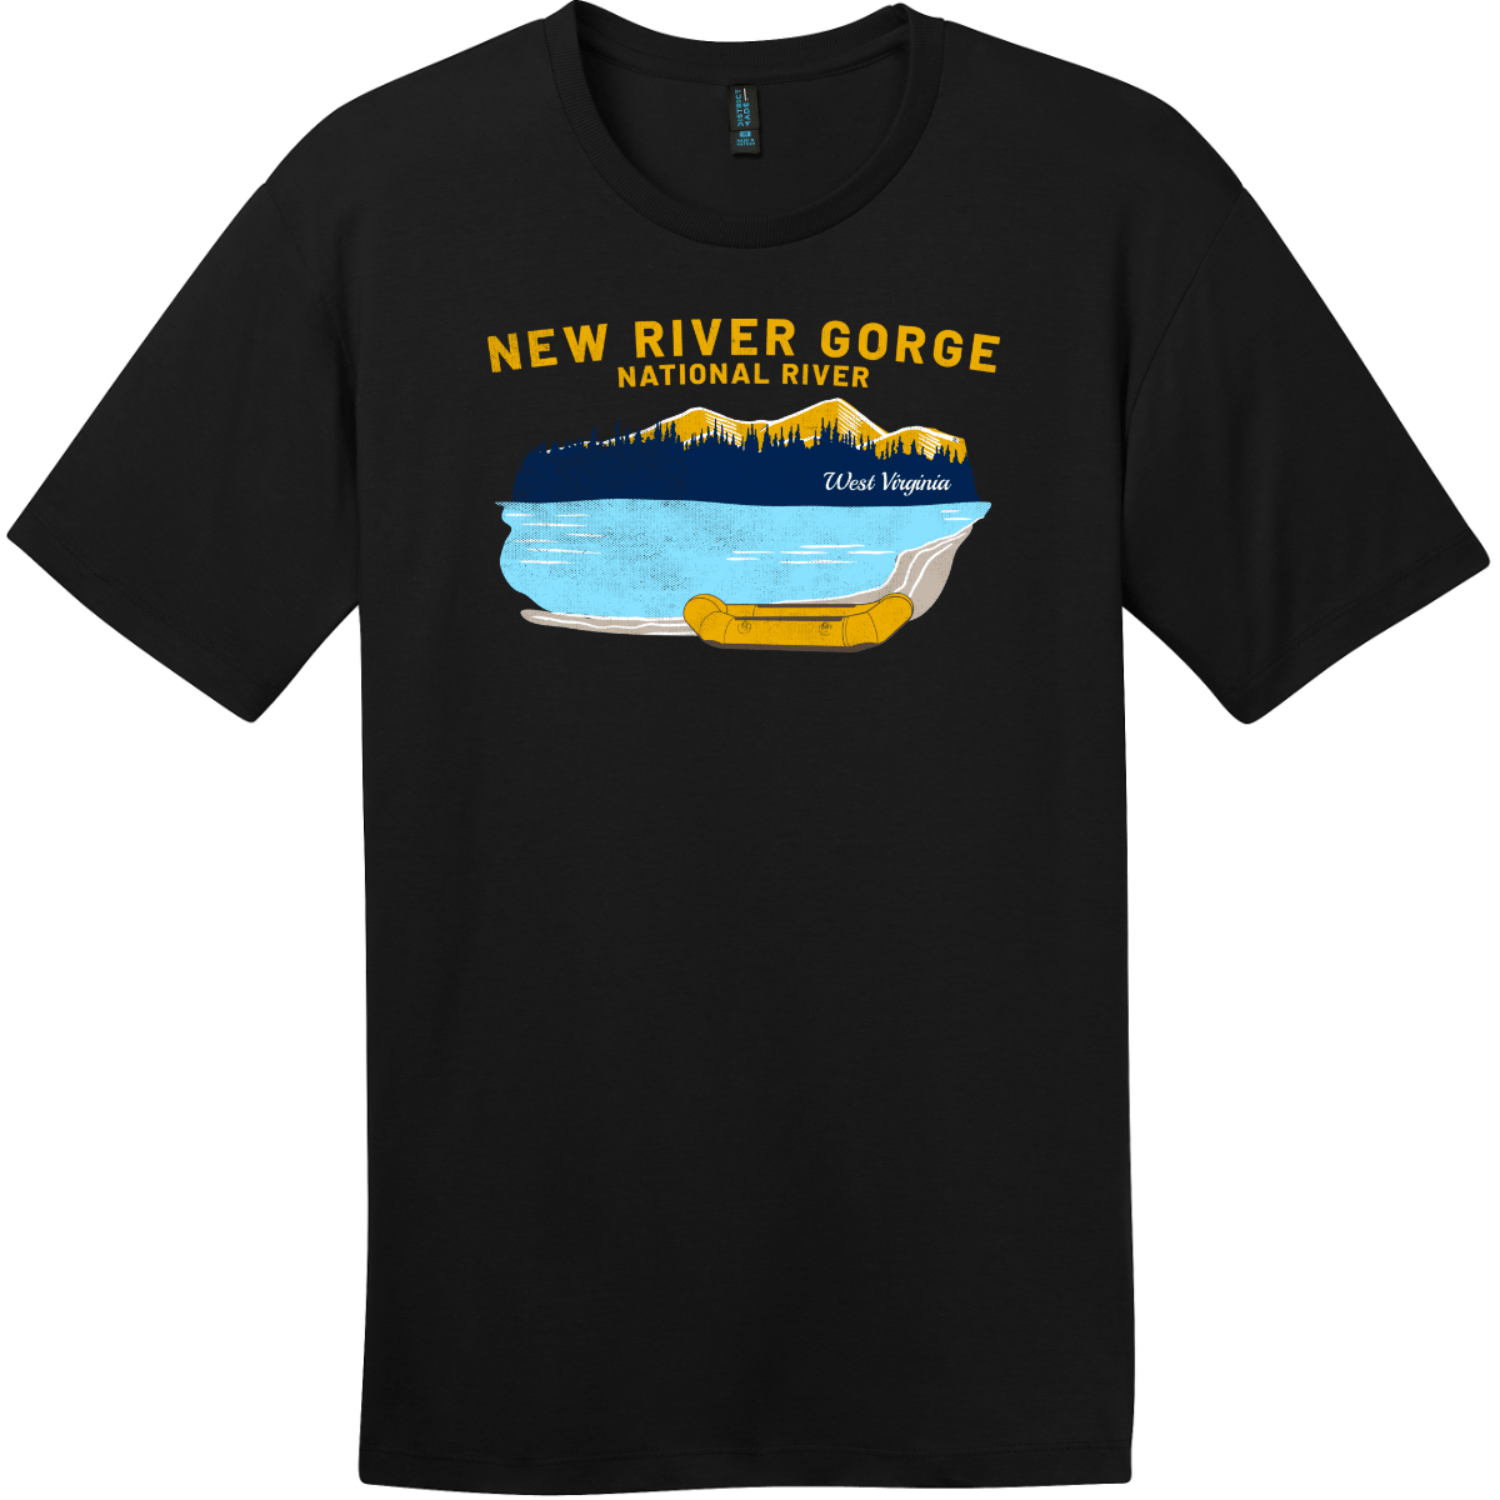 New River Gorge Rafting T-Shirt Jet Black District Perfect Weight Tee DT104